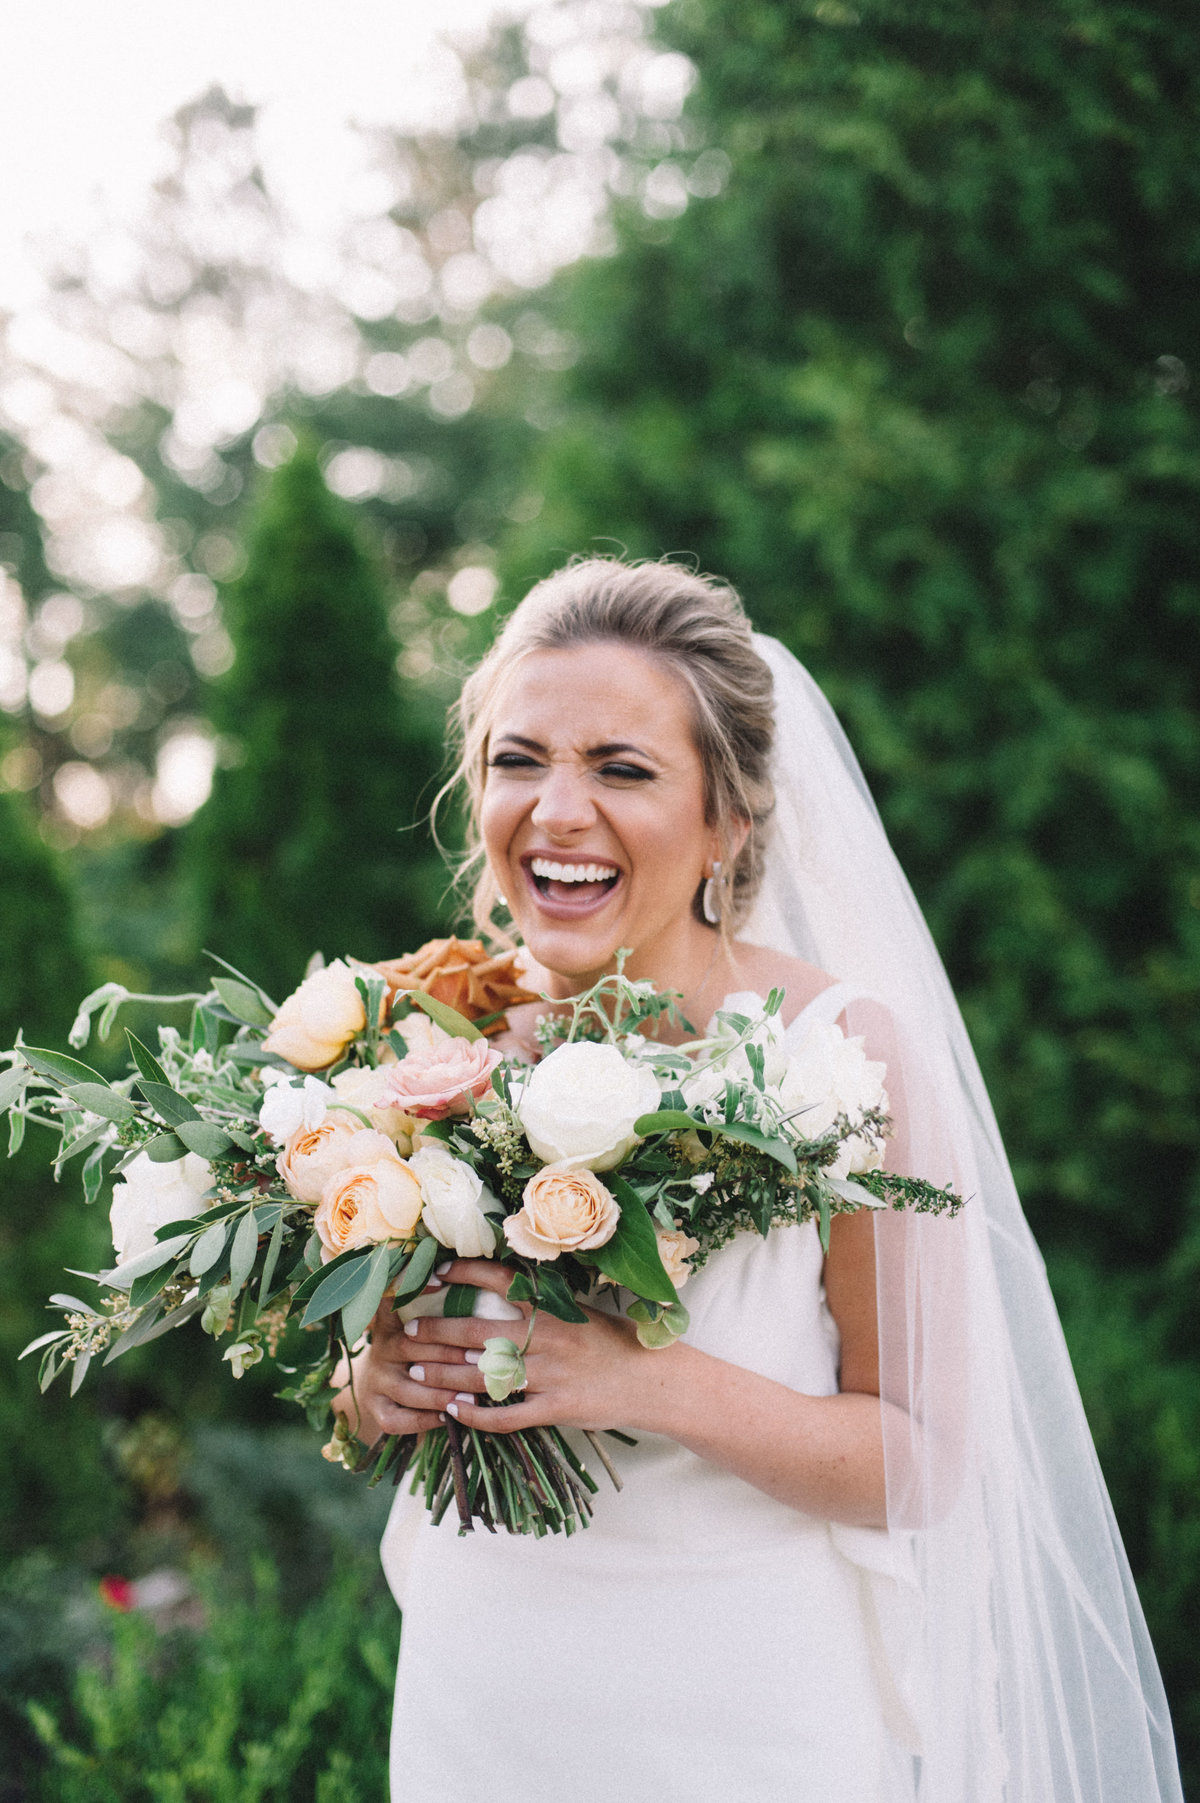 Cute bride laughing with her wedding flower bouquet at Park Crest in Hoover AL